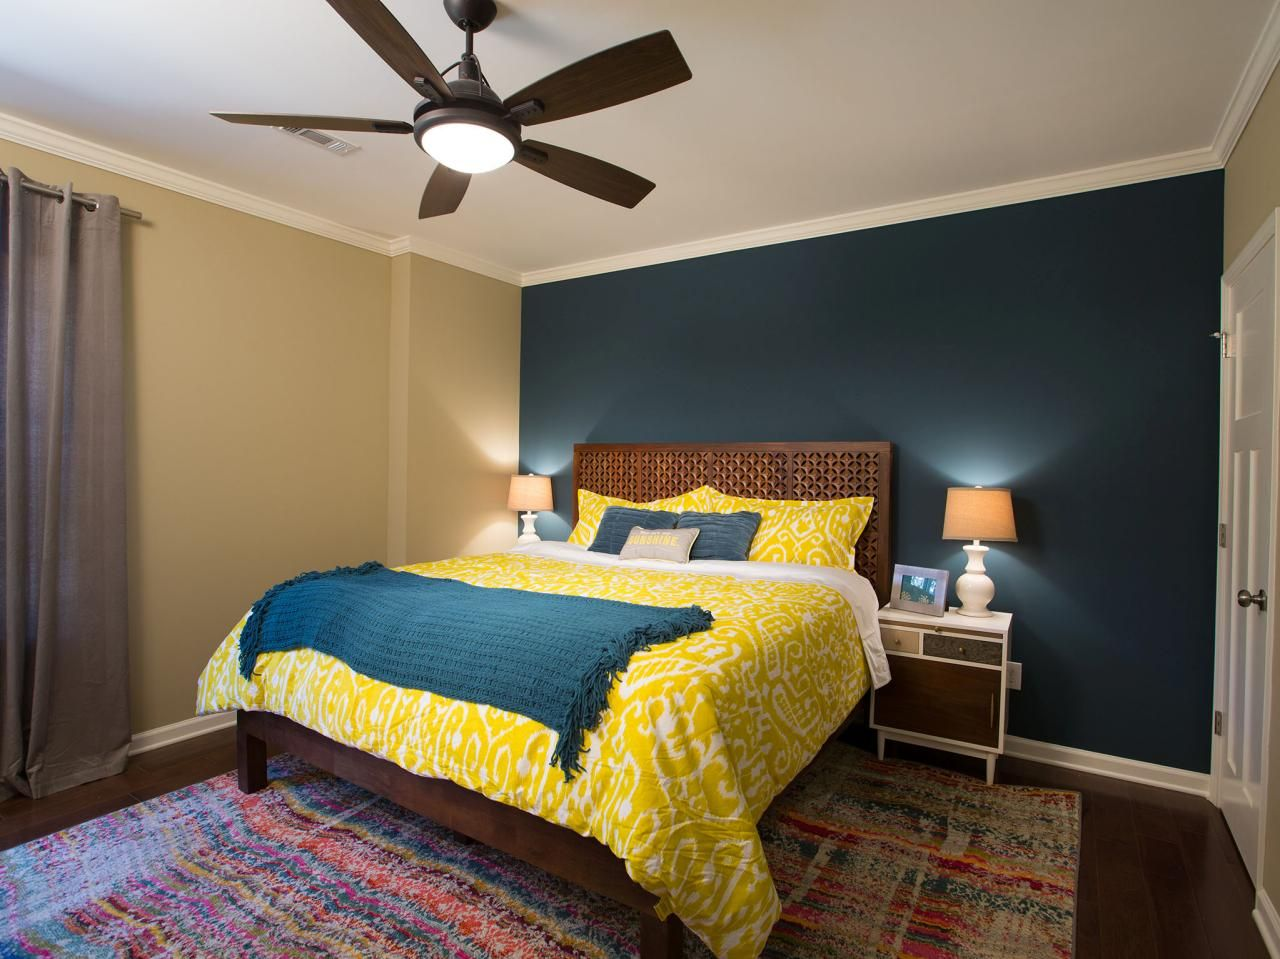 Dark gray and yellow bedding - After Newly Hung Drywall A Dark Hardwood Floor And A King Size Bed